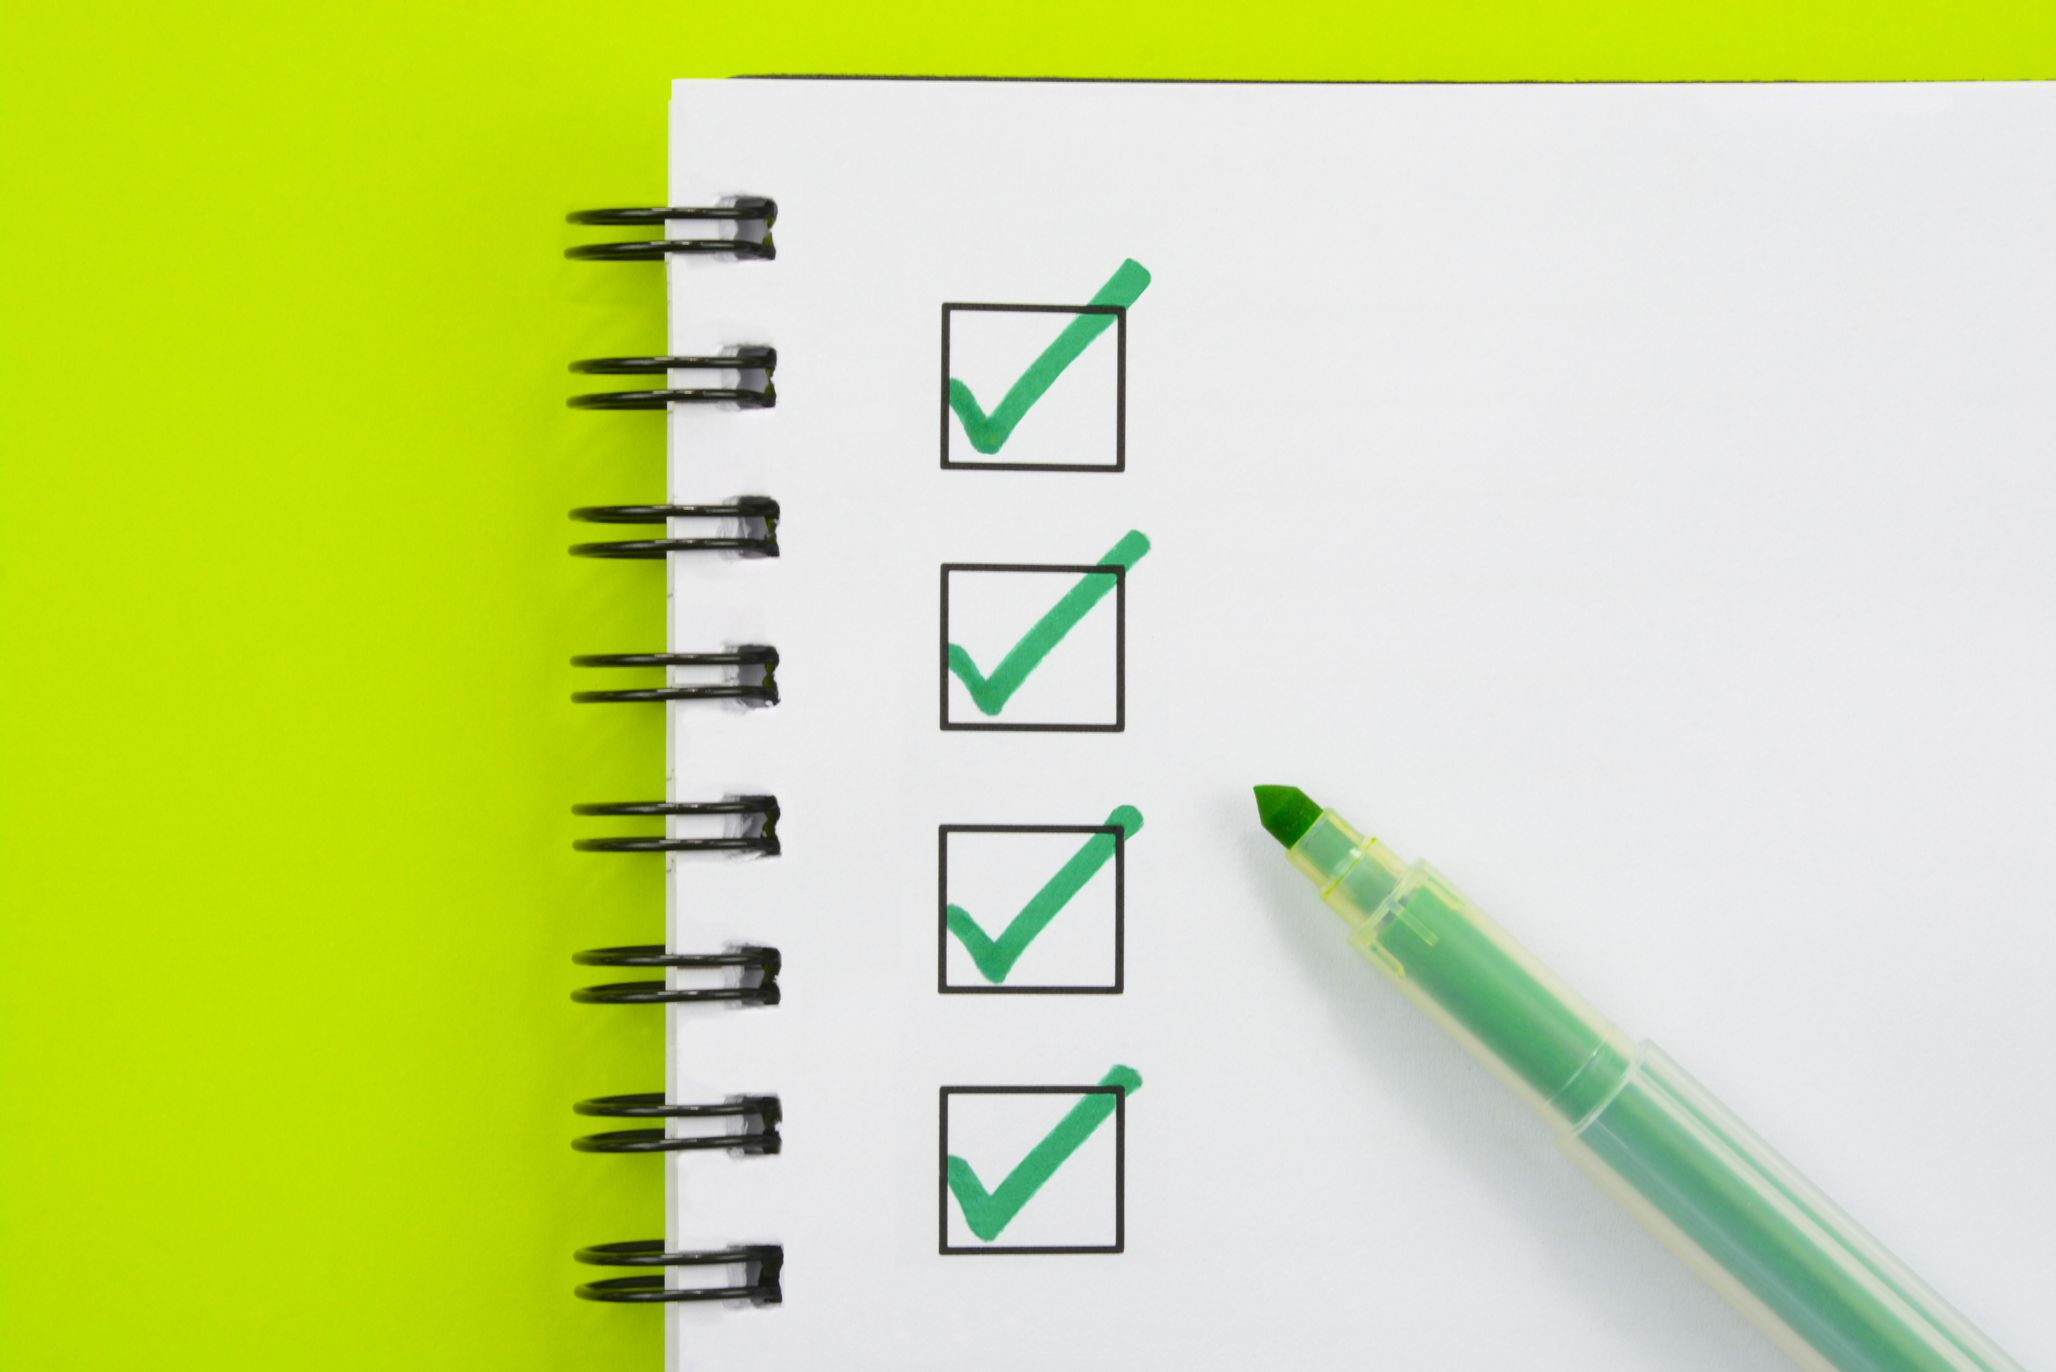 Notebook with checklist in green marker